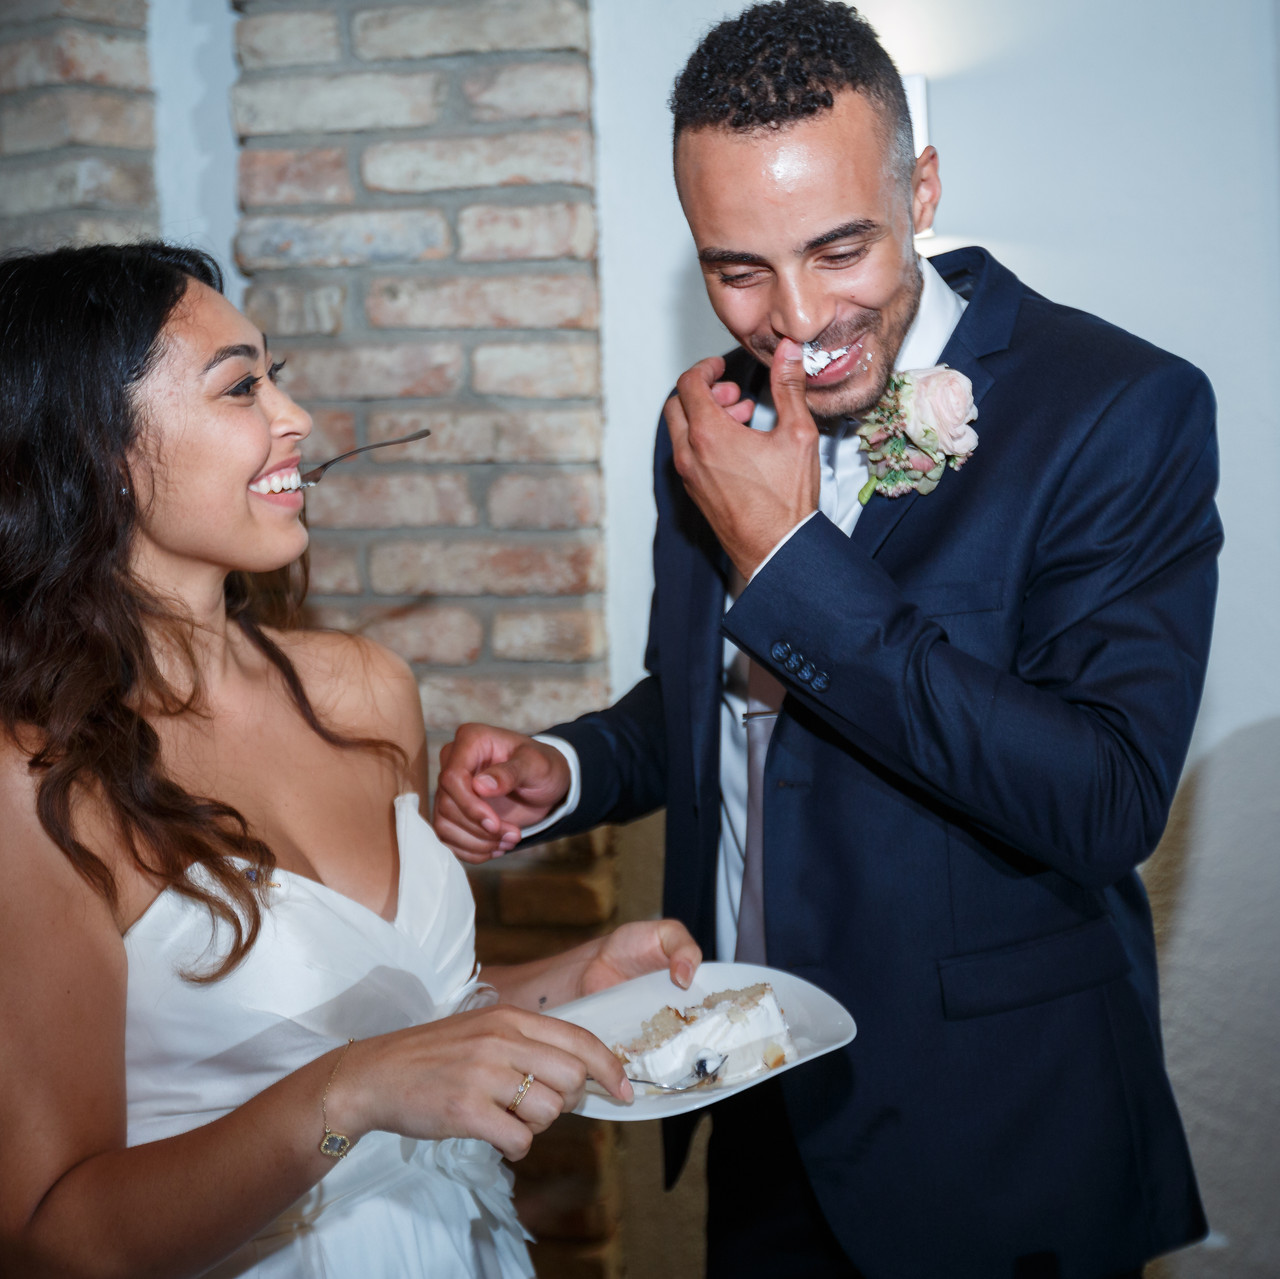 Mia Jesse Wedding September 2015 Camera One card two (192 of 511)